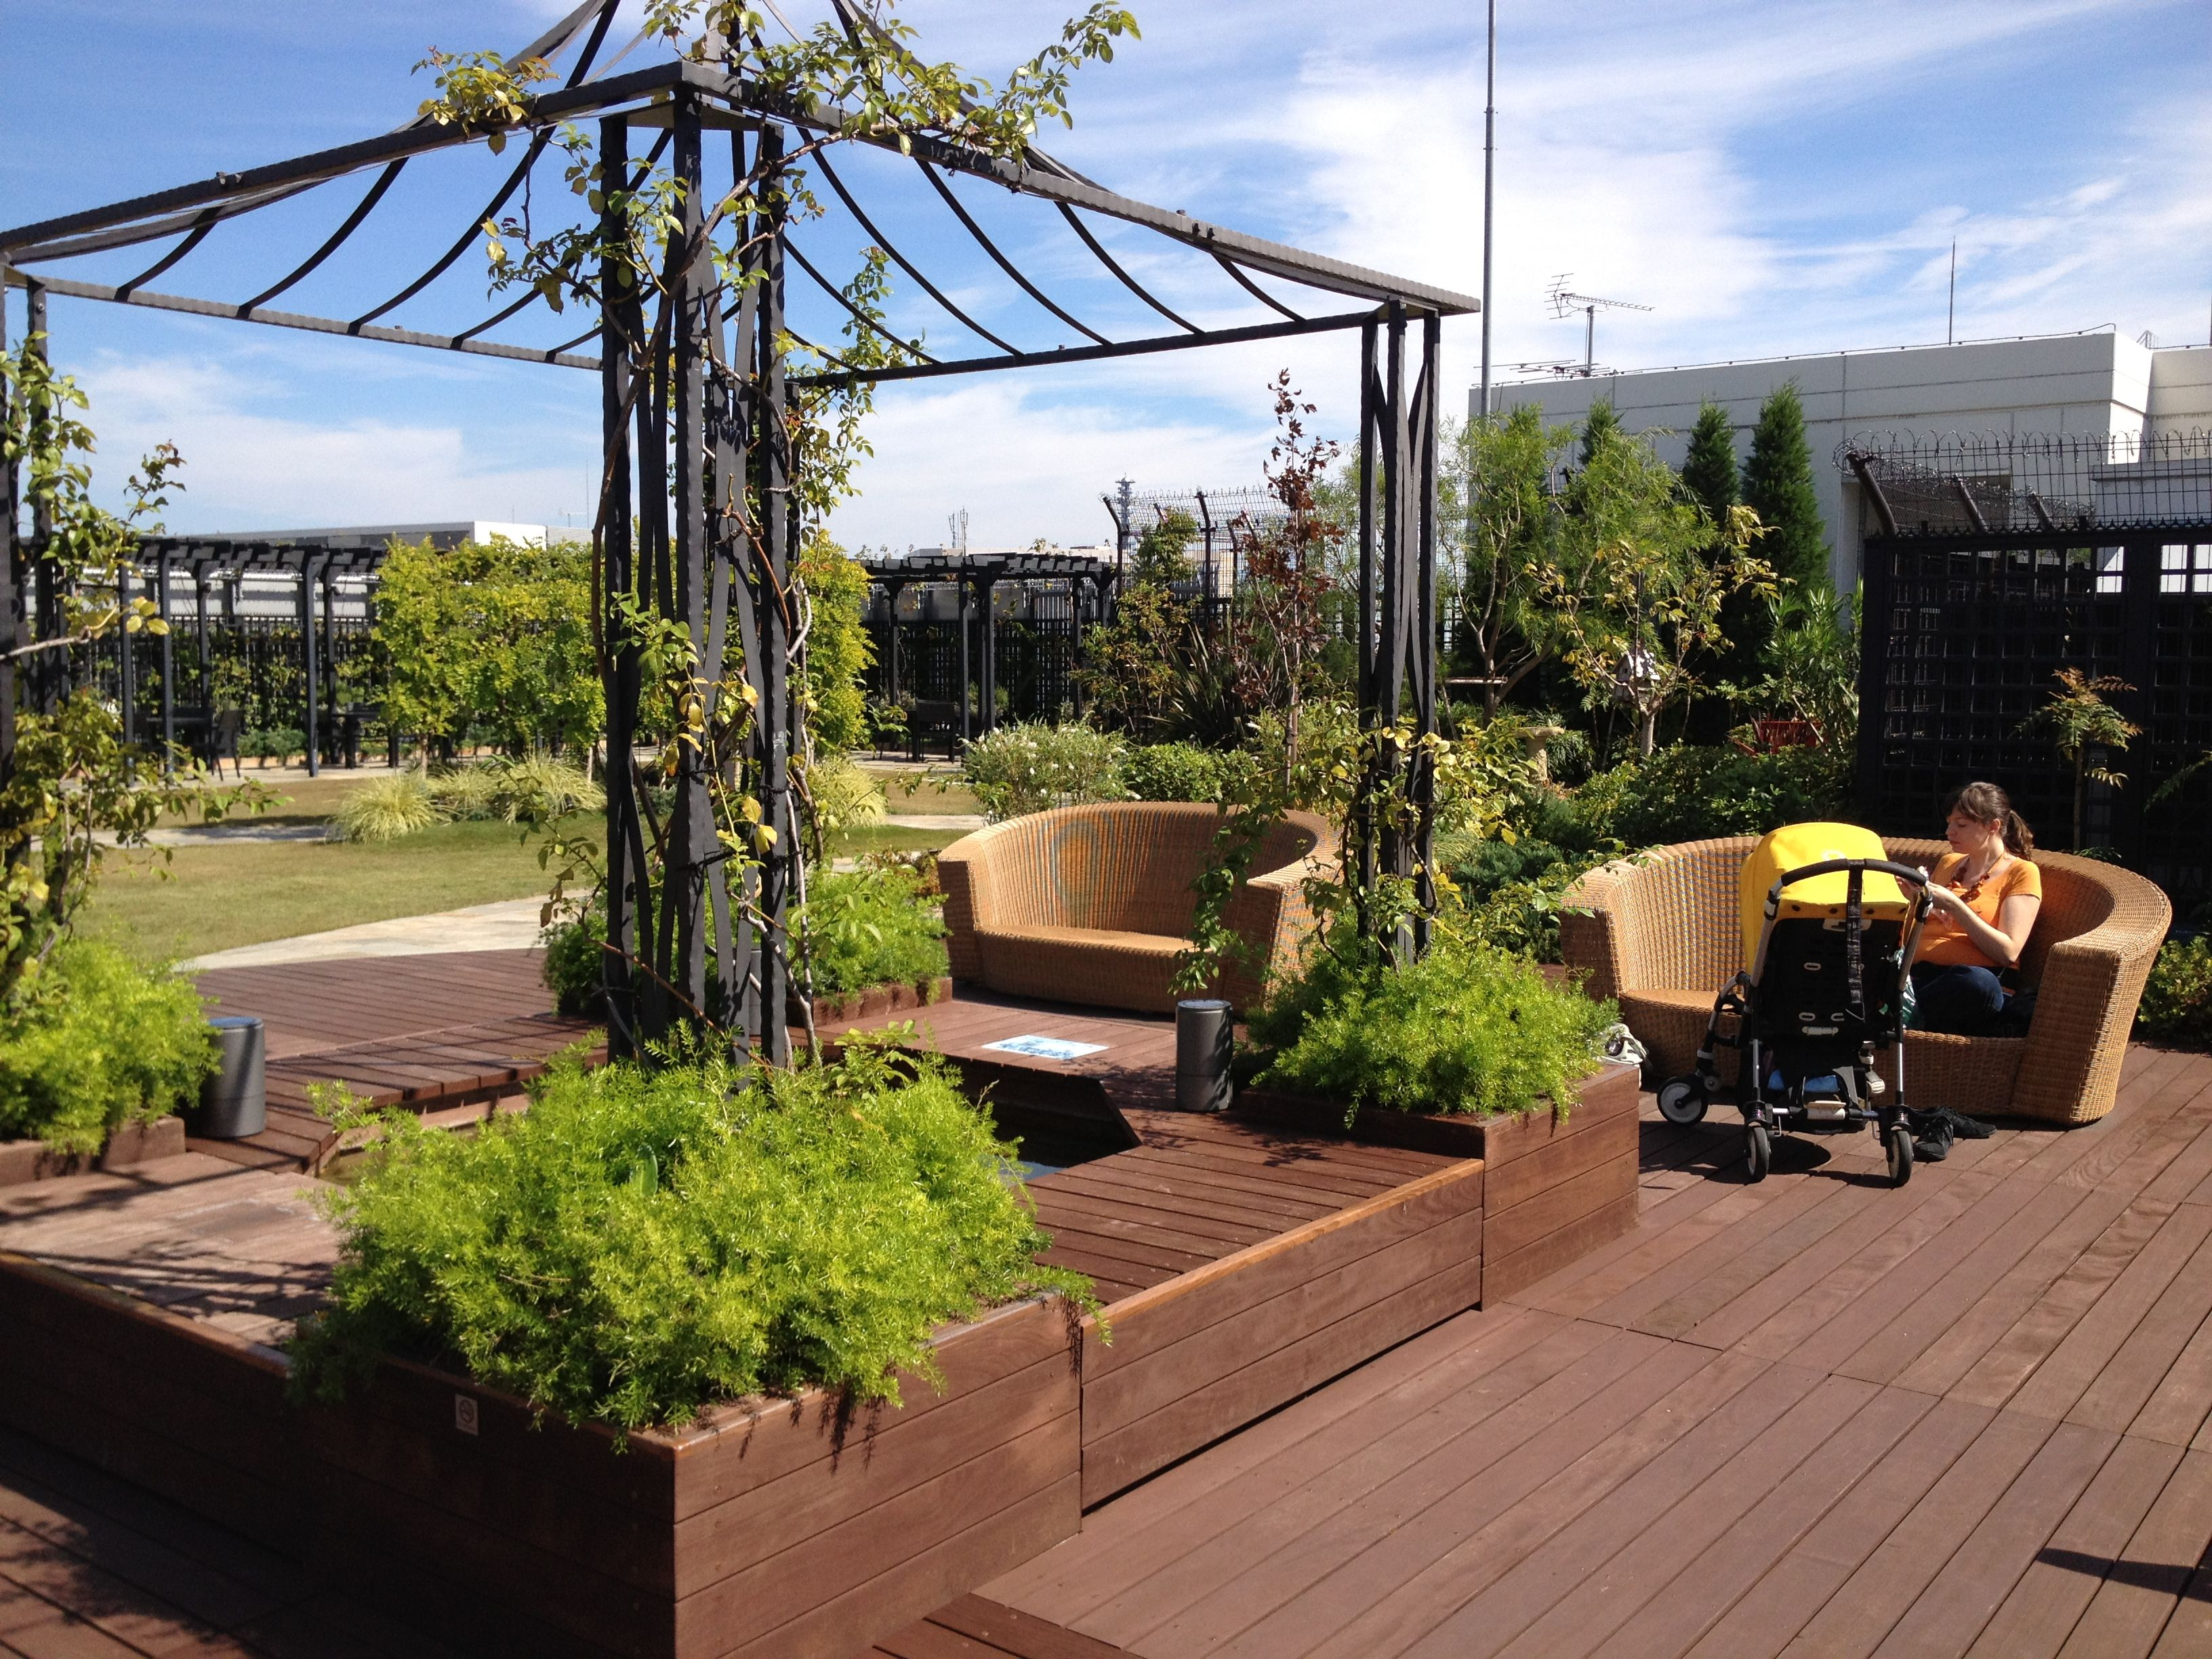 Extraordinary Rooftop Terrace Garden Ideas With Images Rooftop